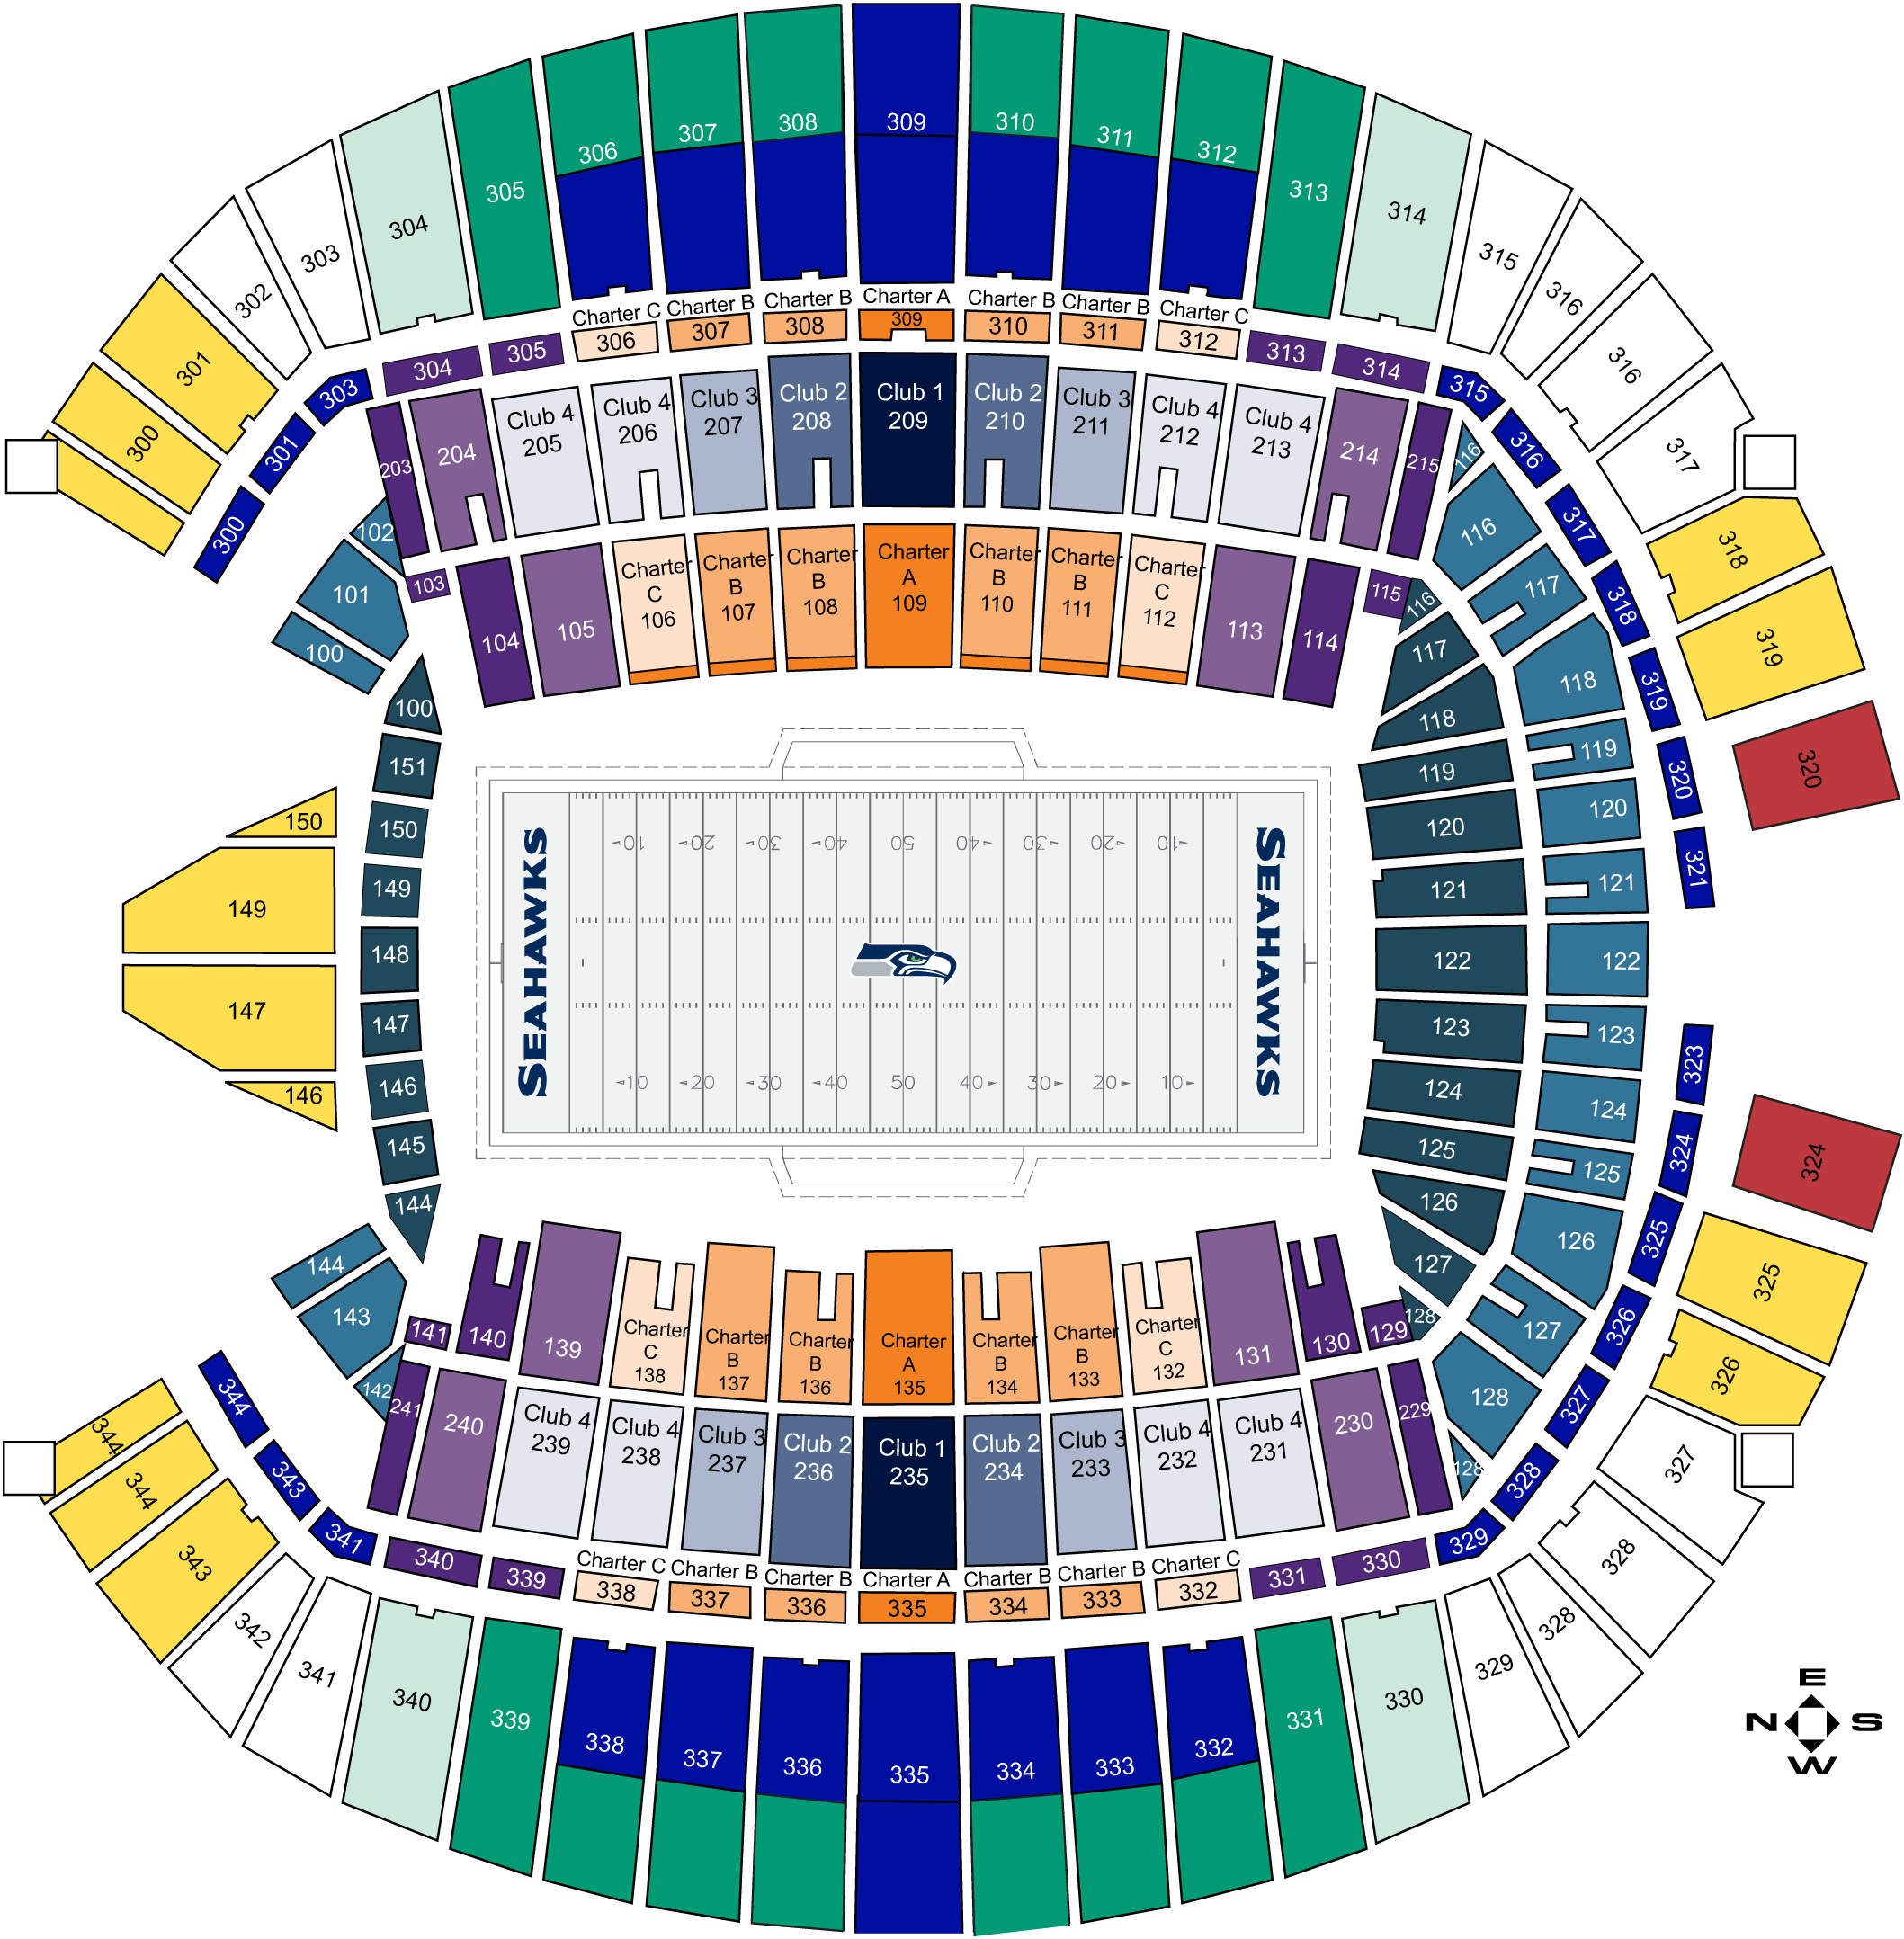 Centurylink Field Map Seattle Seahawks Seating Chart at CenturyLink Field | Seattle  Centurylink Field Map